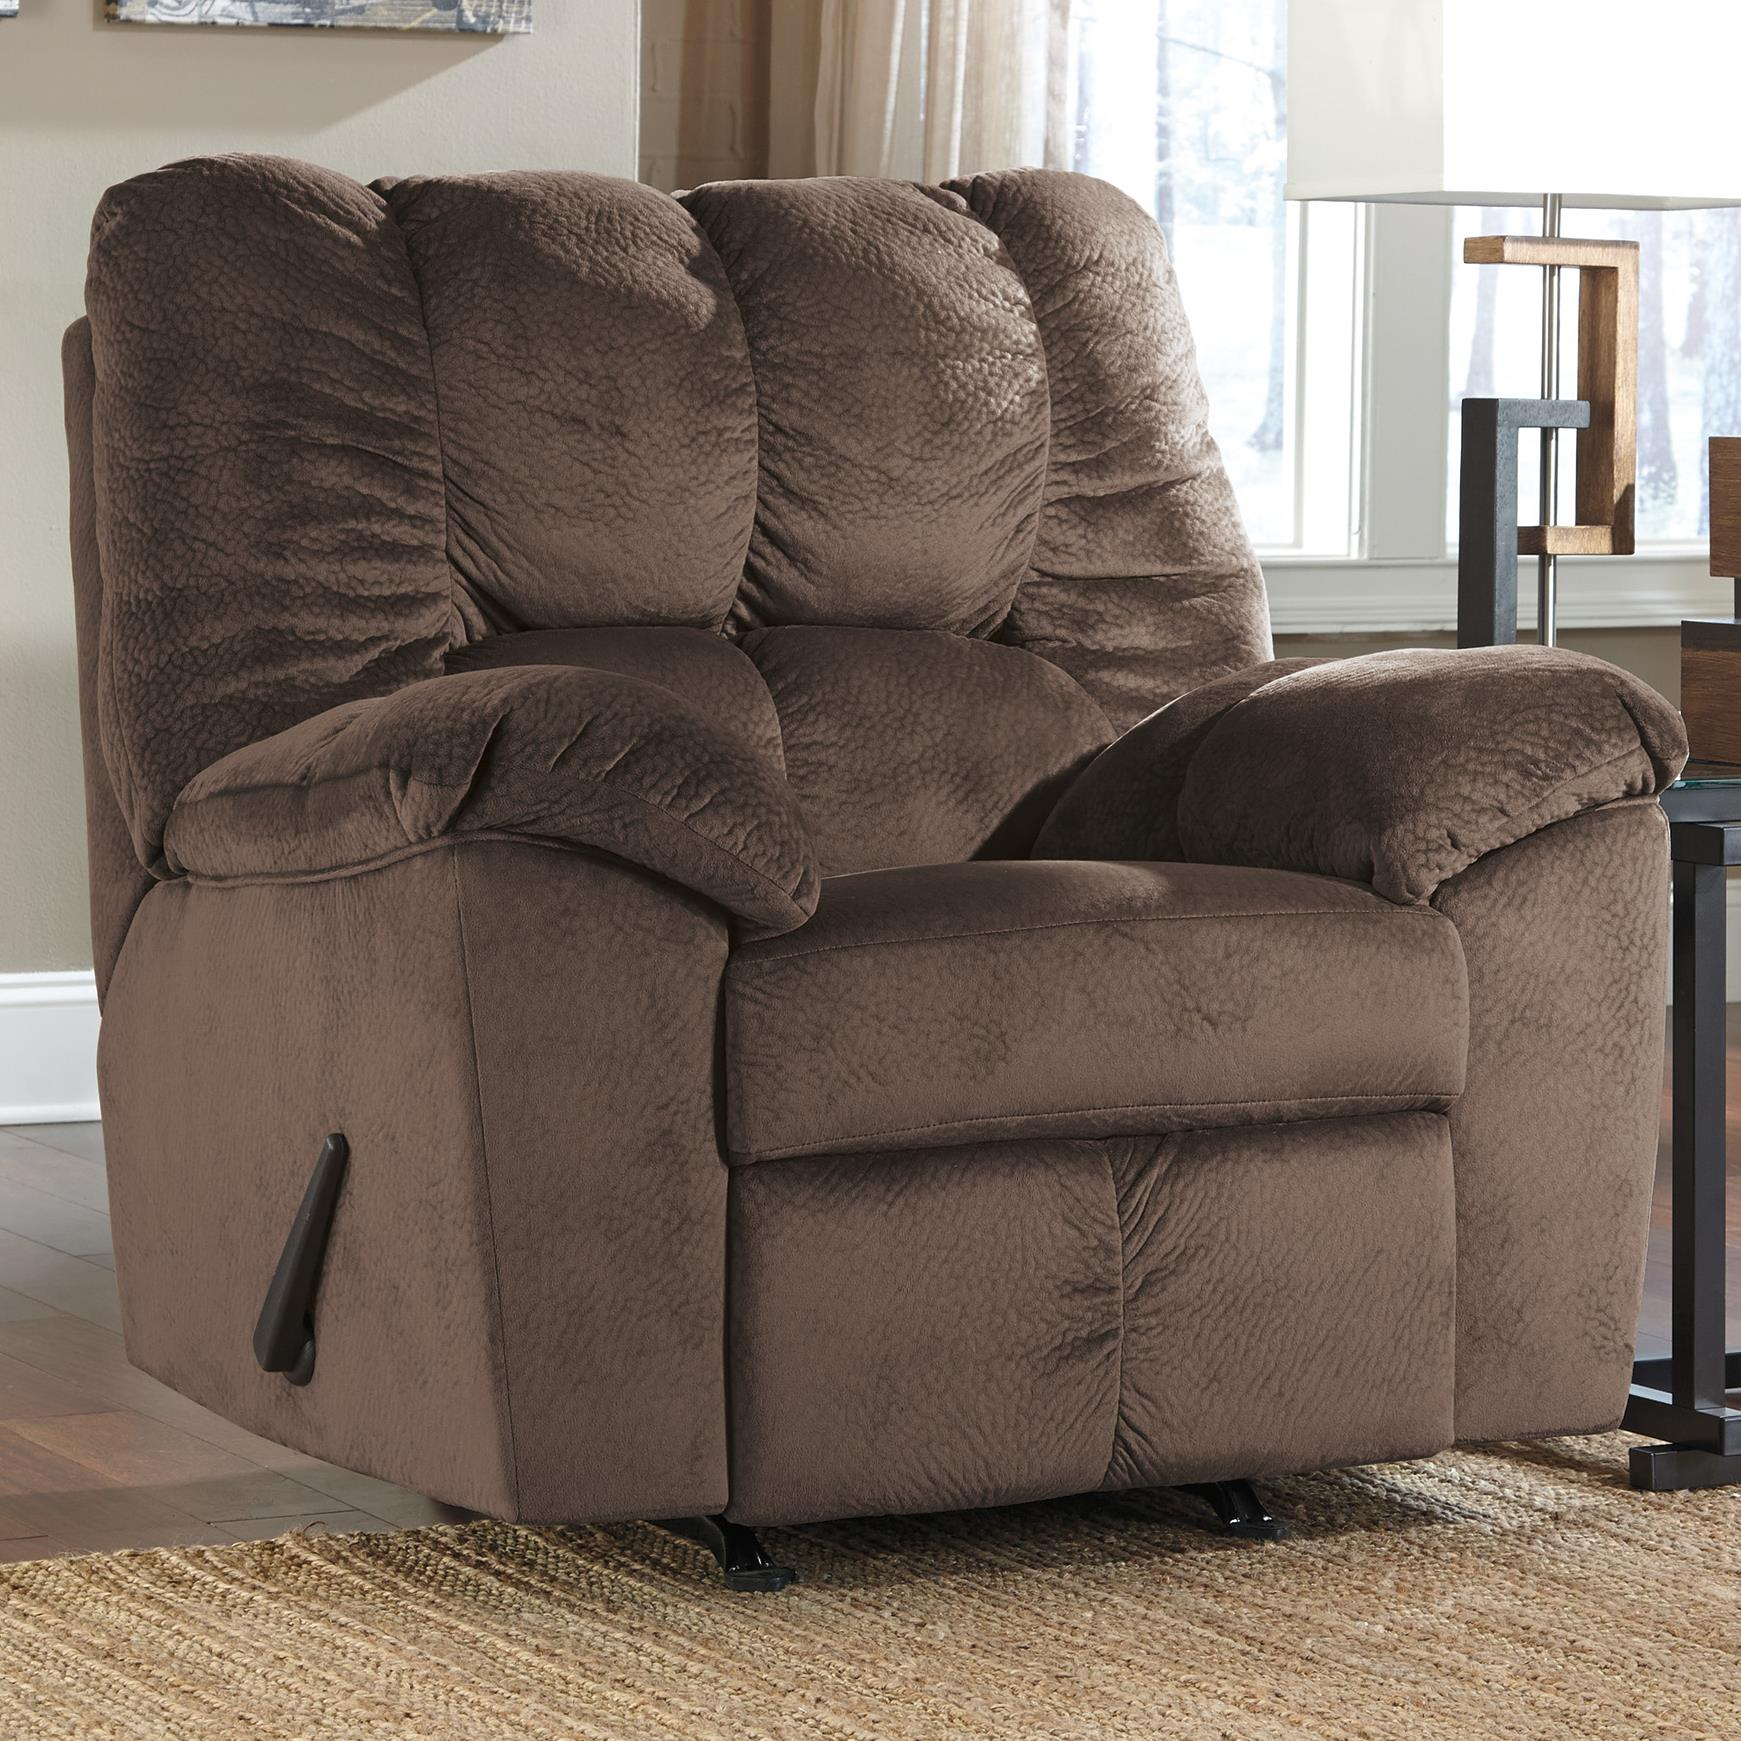 Signature Design by Ashley Julson - Cafe Rocker Recliner - Item Number: 2660425